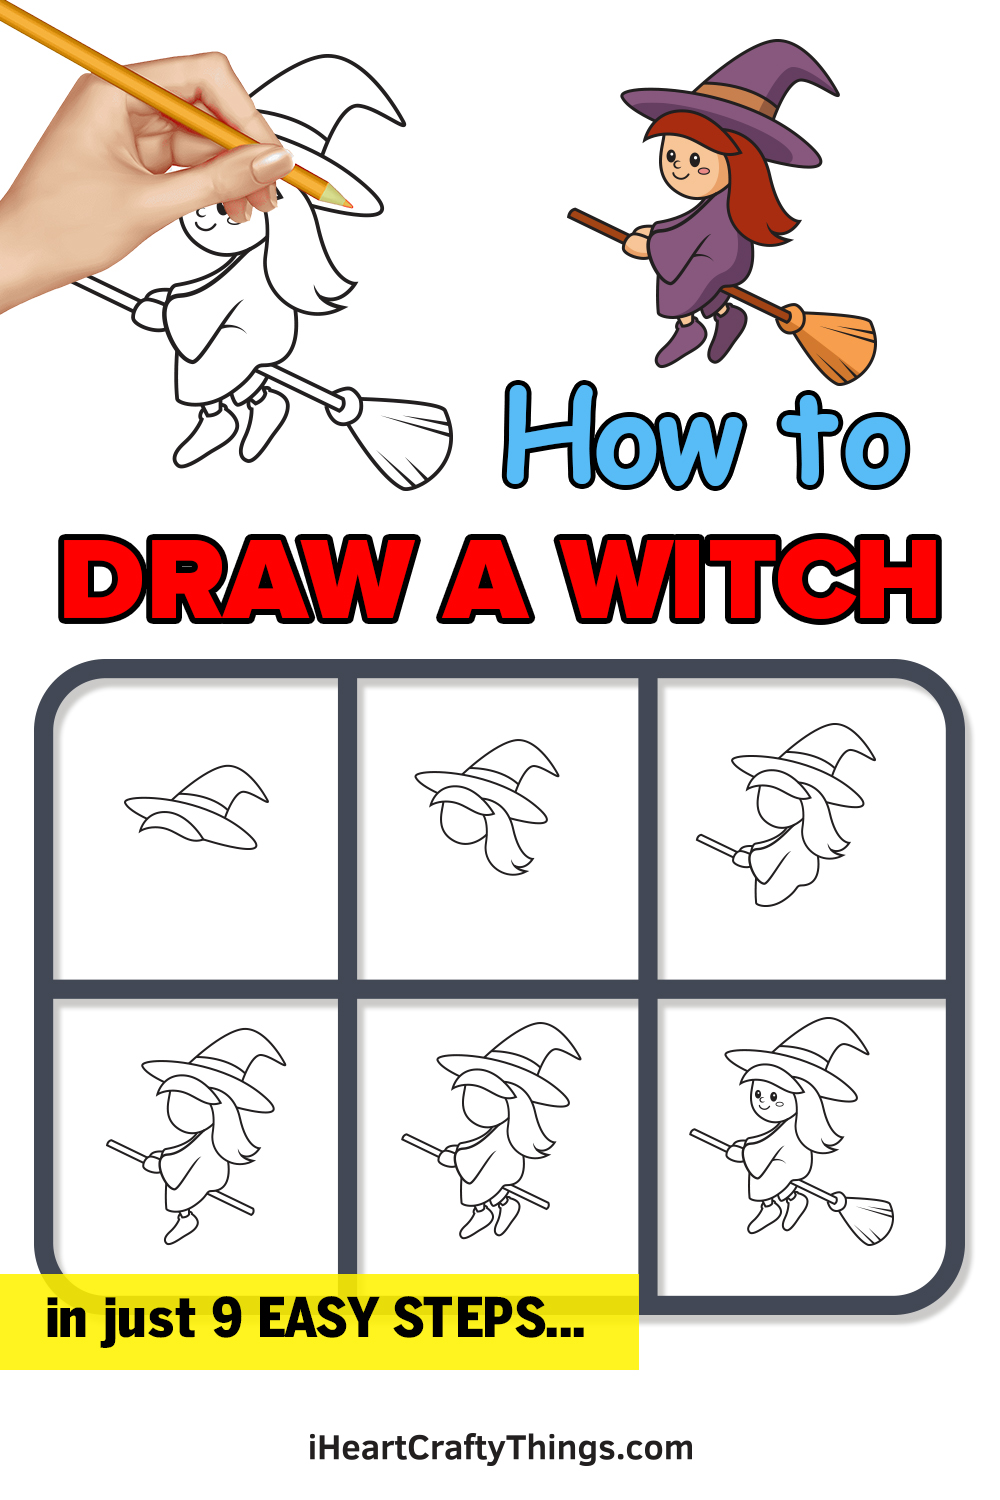 how to draw a witch in 9 easy steps